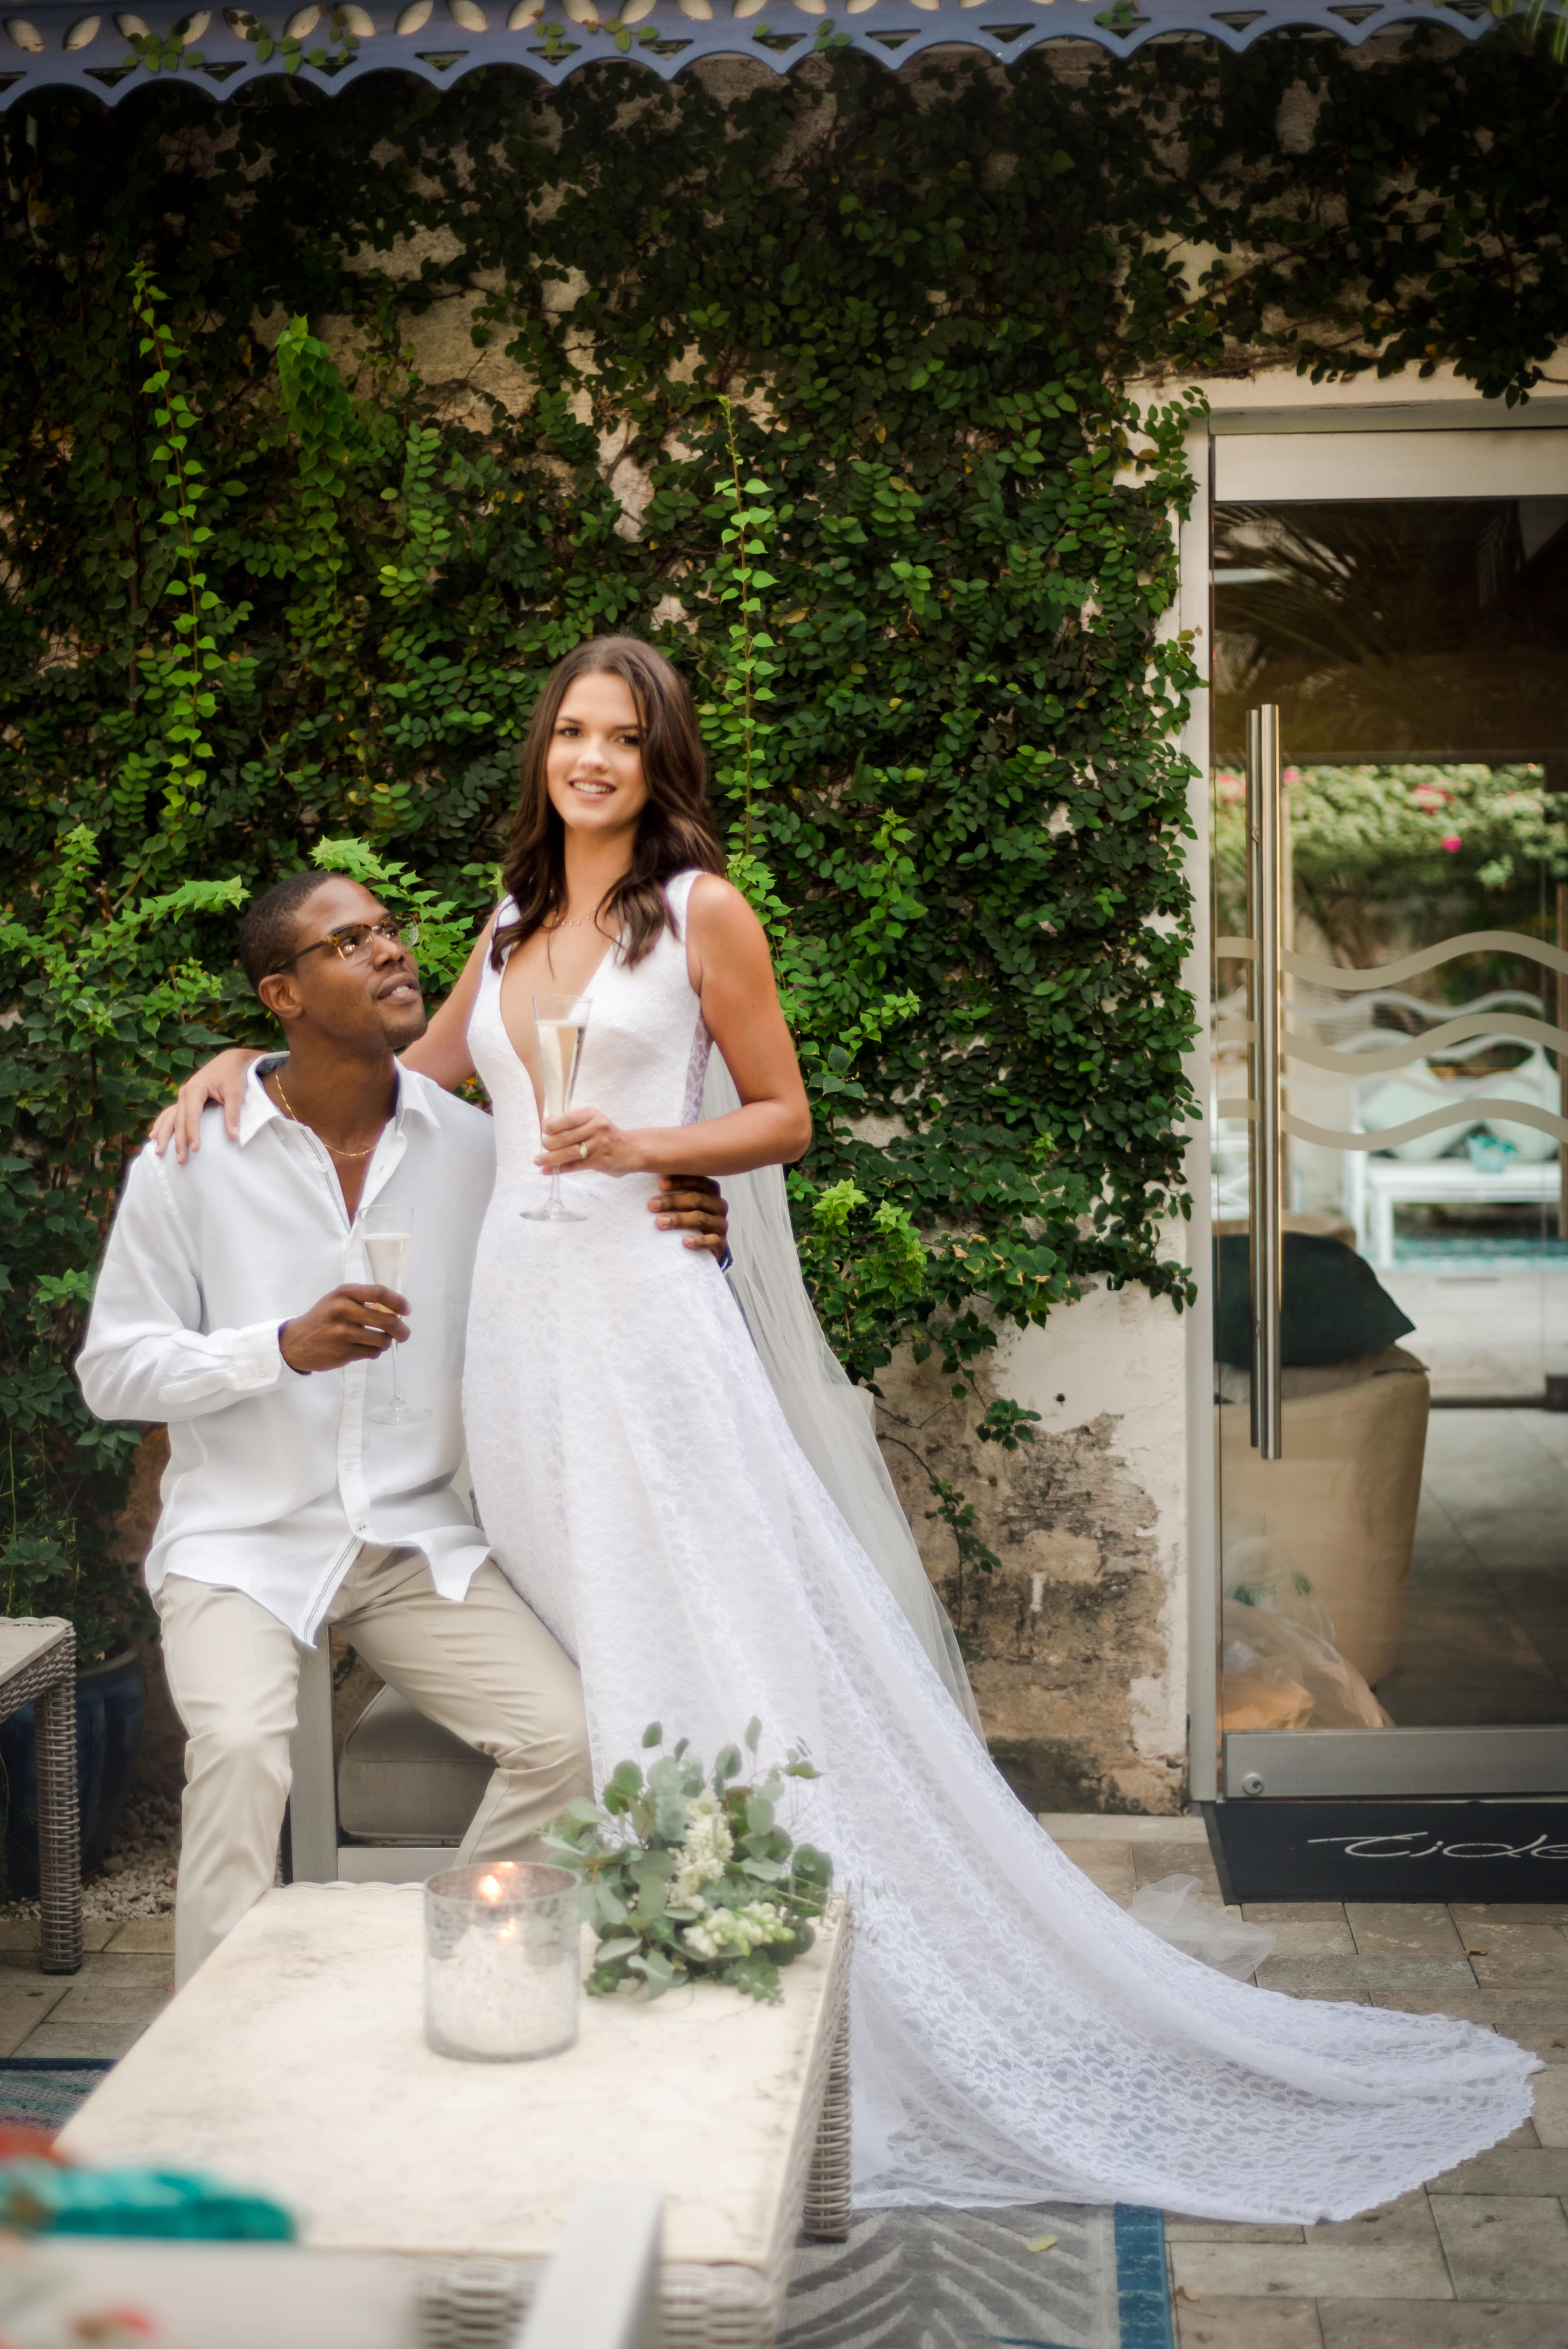 Styled Elopement at Tides Restaurant Barbados, Photography by Sofie Warren, Designer Wedding Dress by Jaye Applewaite for Luxury Destination Wedding Blog Adriana Weddings